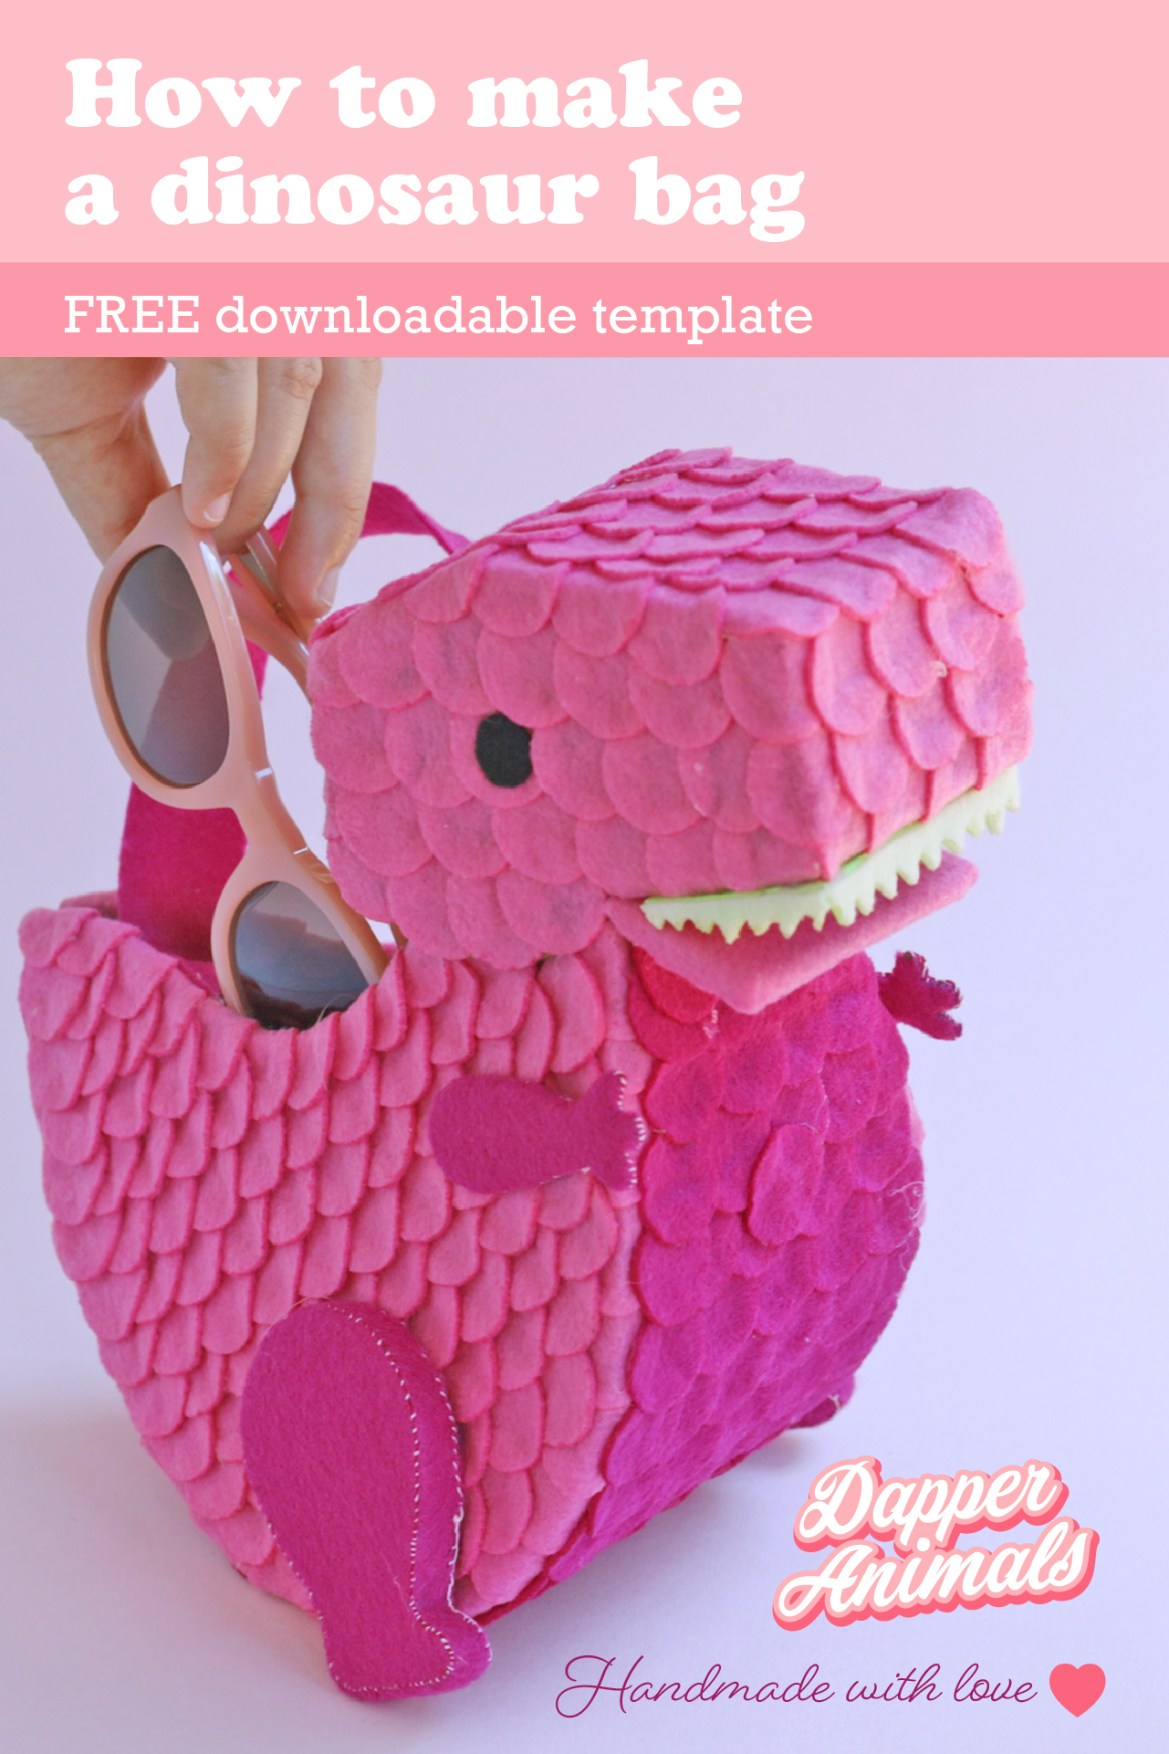 Step by Step tutorial to make an adorable felt dinosaur purse